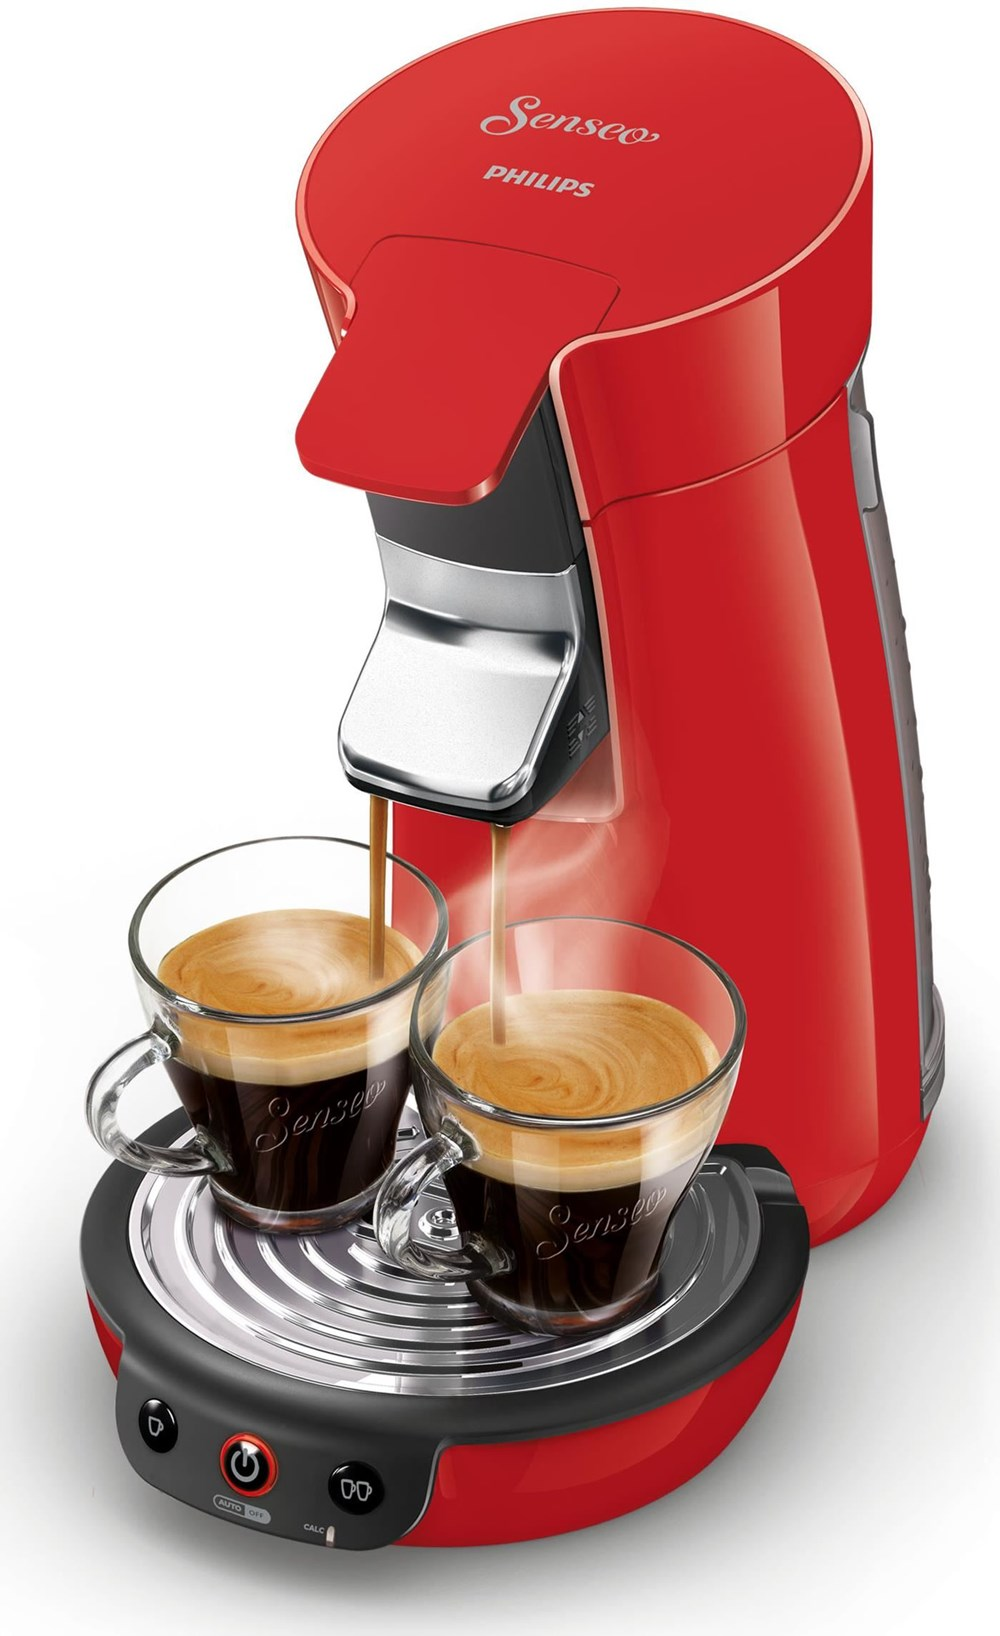 philips senseo viva caf coffee pod machine hd7829 red. Black Bedroom Furniture Sets. Home Design Ideas